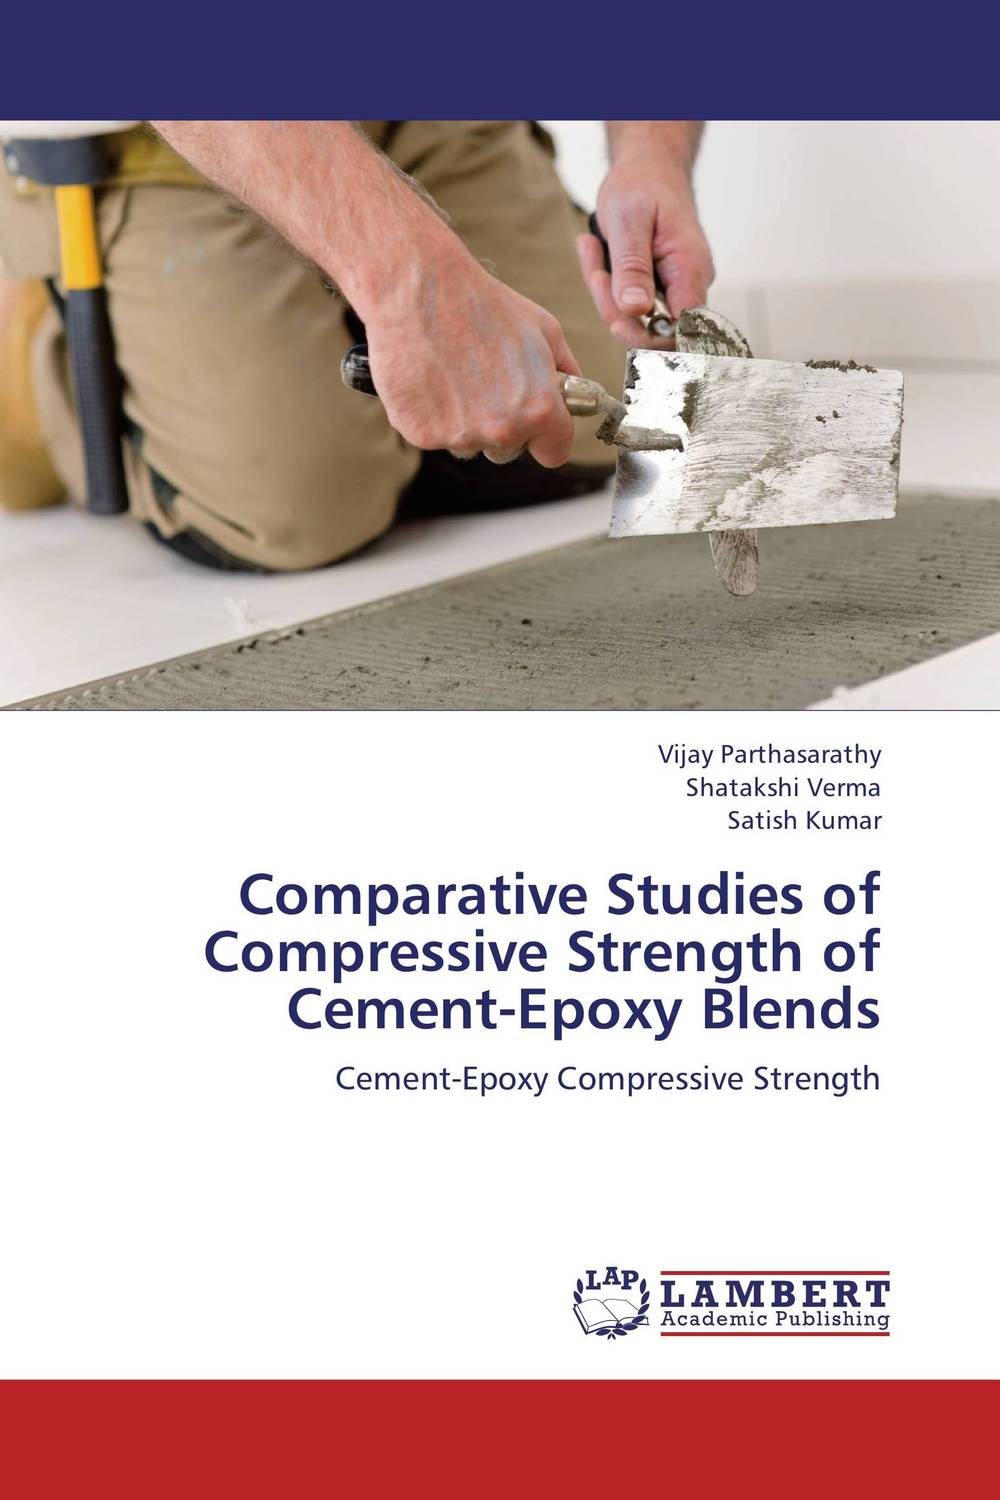 Comparative Studies of Compressive Strength of Cement-Epoxy Blends maushmi kumar and vikas verma lipstatin fermentative production